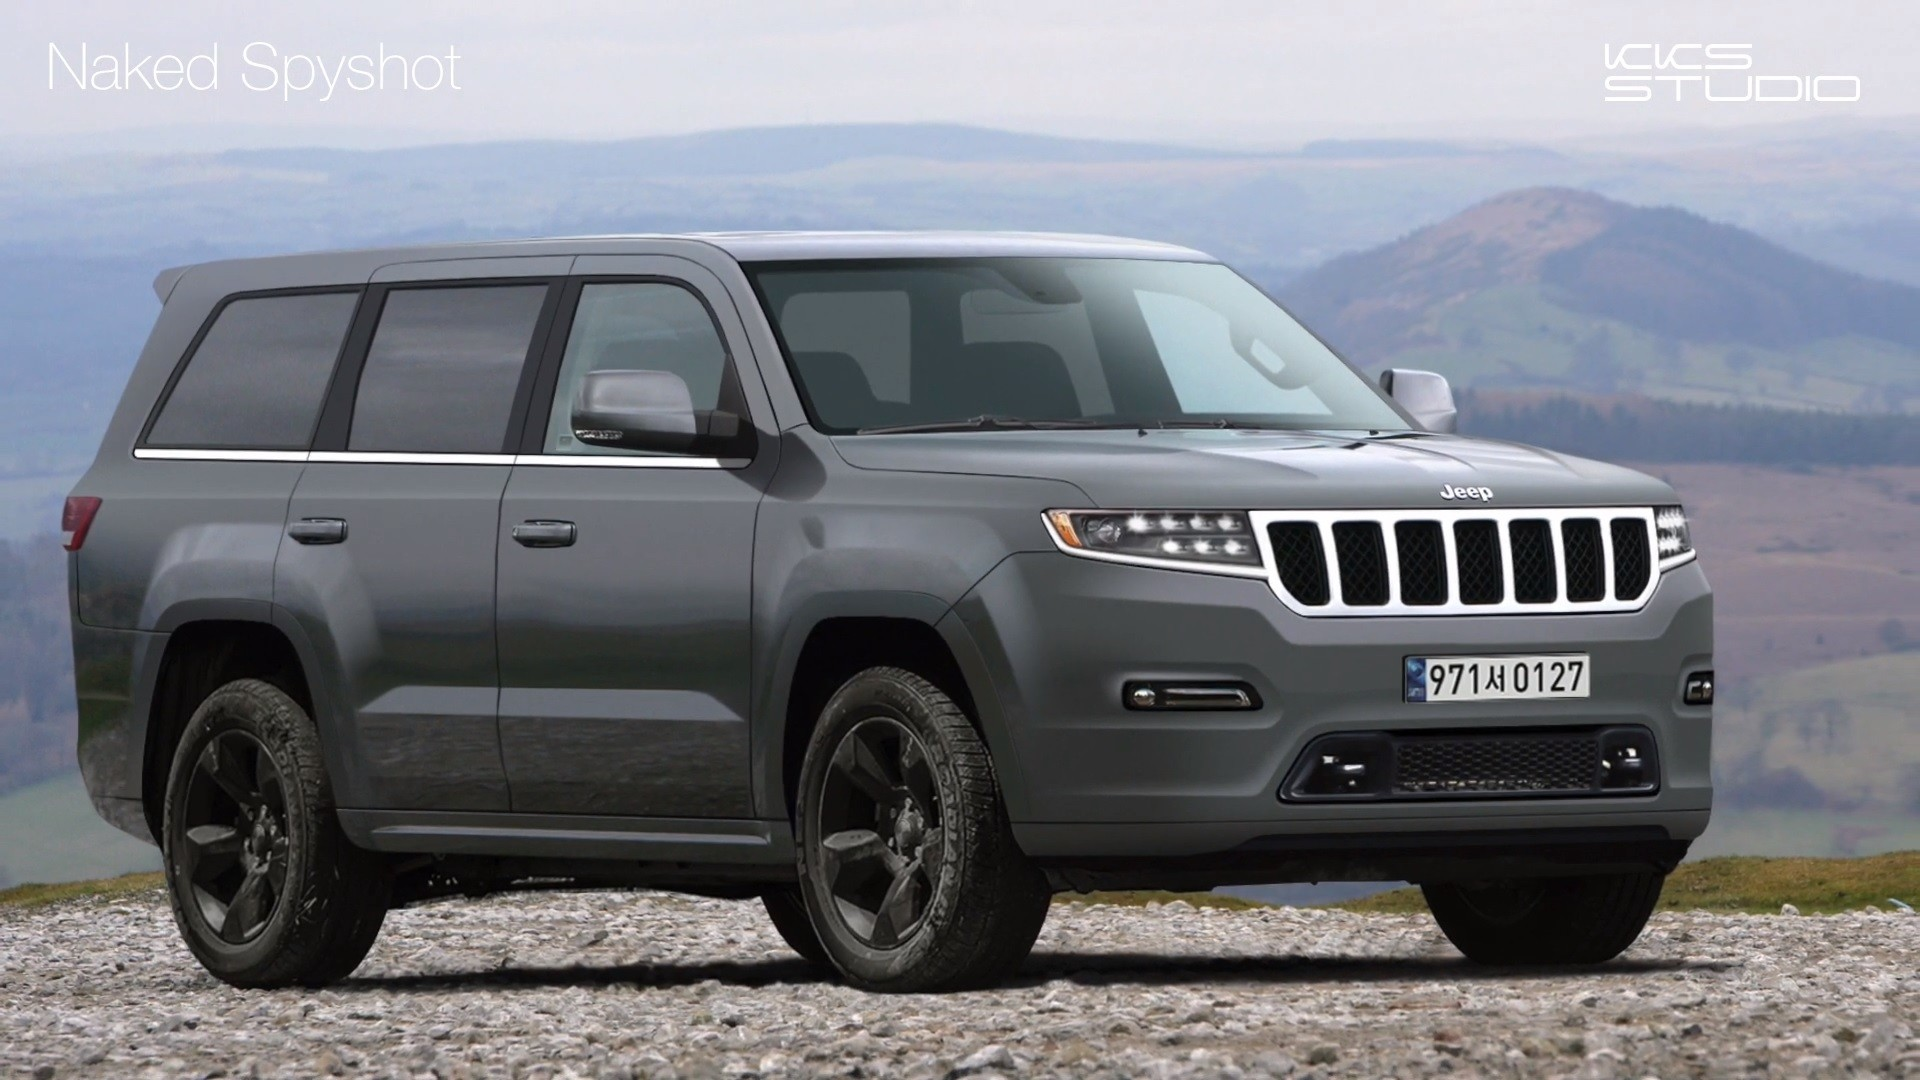 2017 - [Jeep] Grand Wagoneer - Page 3 2022-jeep-grand-wagoneer-rendered-phev-and-trackhawk-options-incoming_1